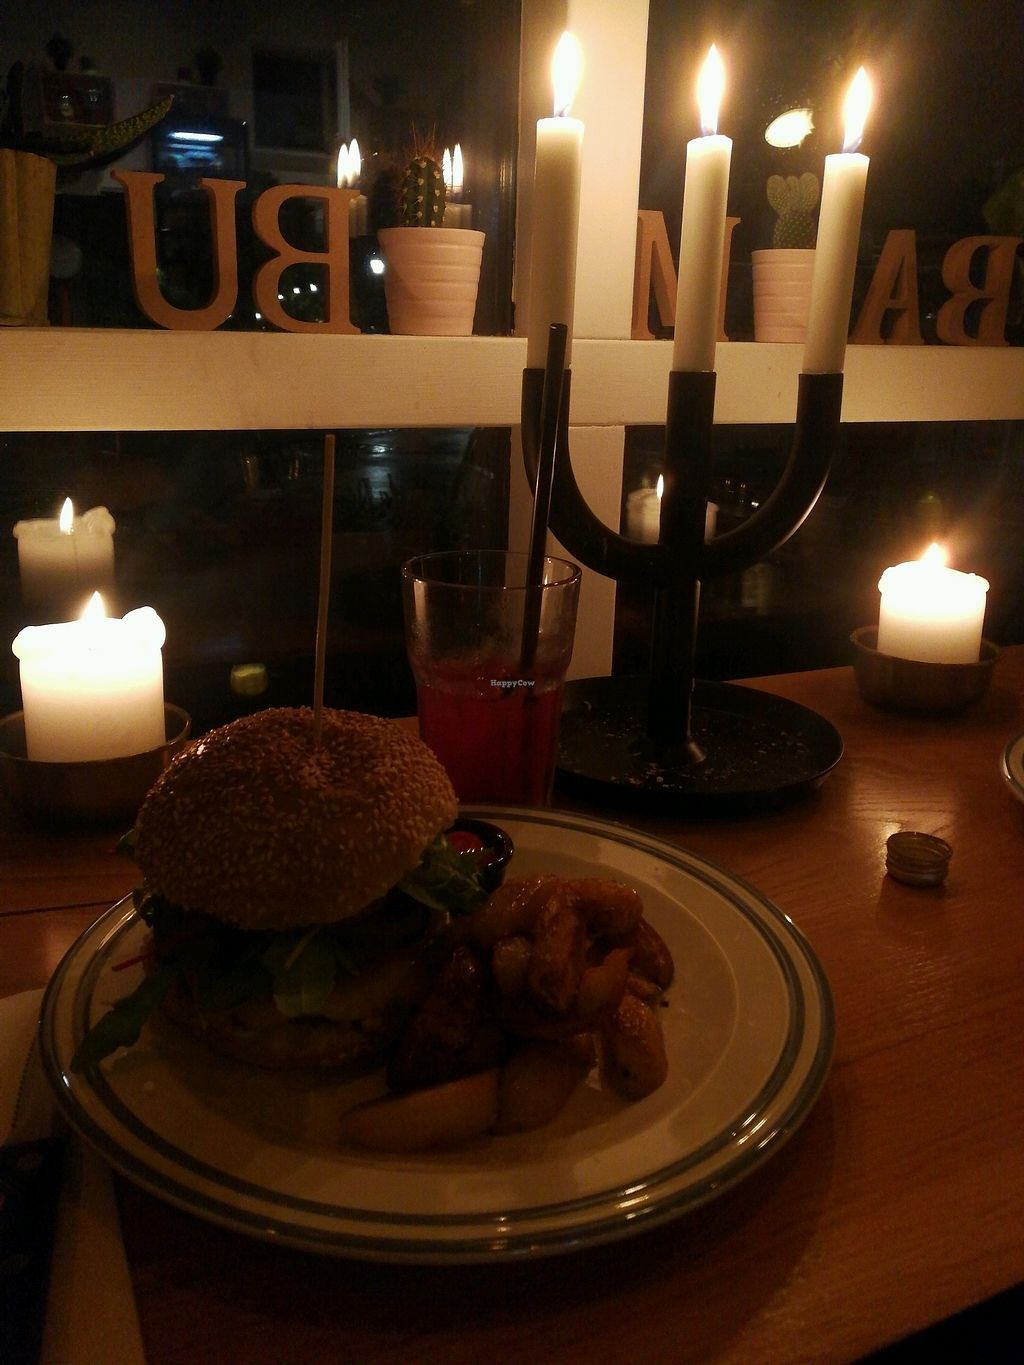 """Photo of CLOSED: Cafe Bambu  by <a href=""""/members/profile/SindujaSubhashChand"""">SindujaSubhashChand</a> <br/>vegan burger with fresh juice <br/> October 11, 2017  - <a href='/contact/abuse/image/101387/314269'>Report</a>"""